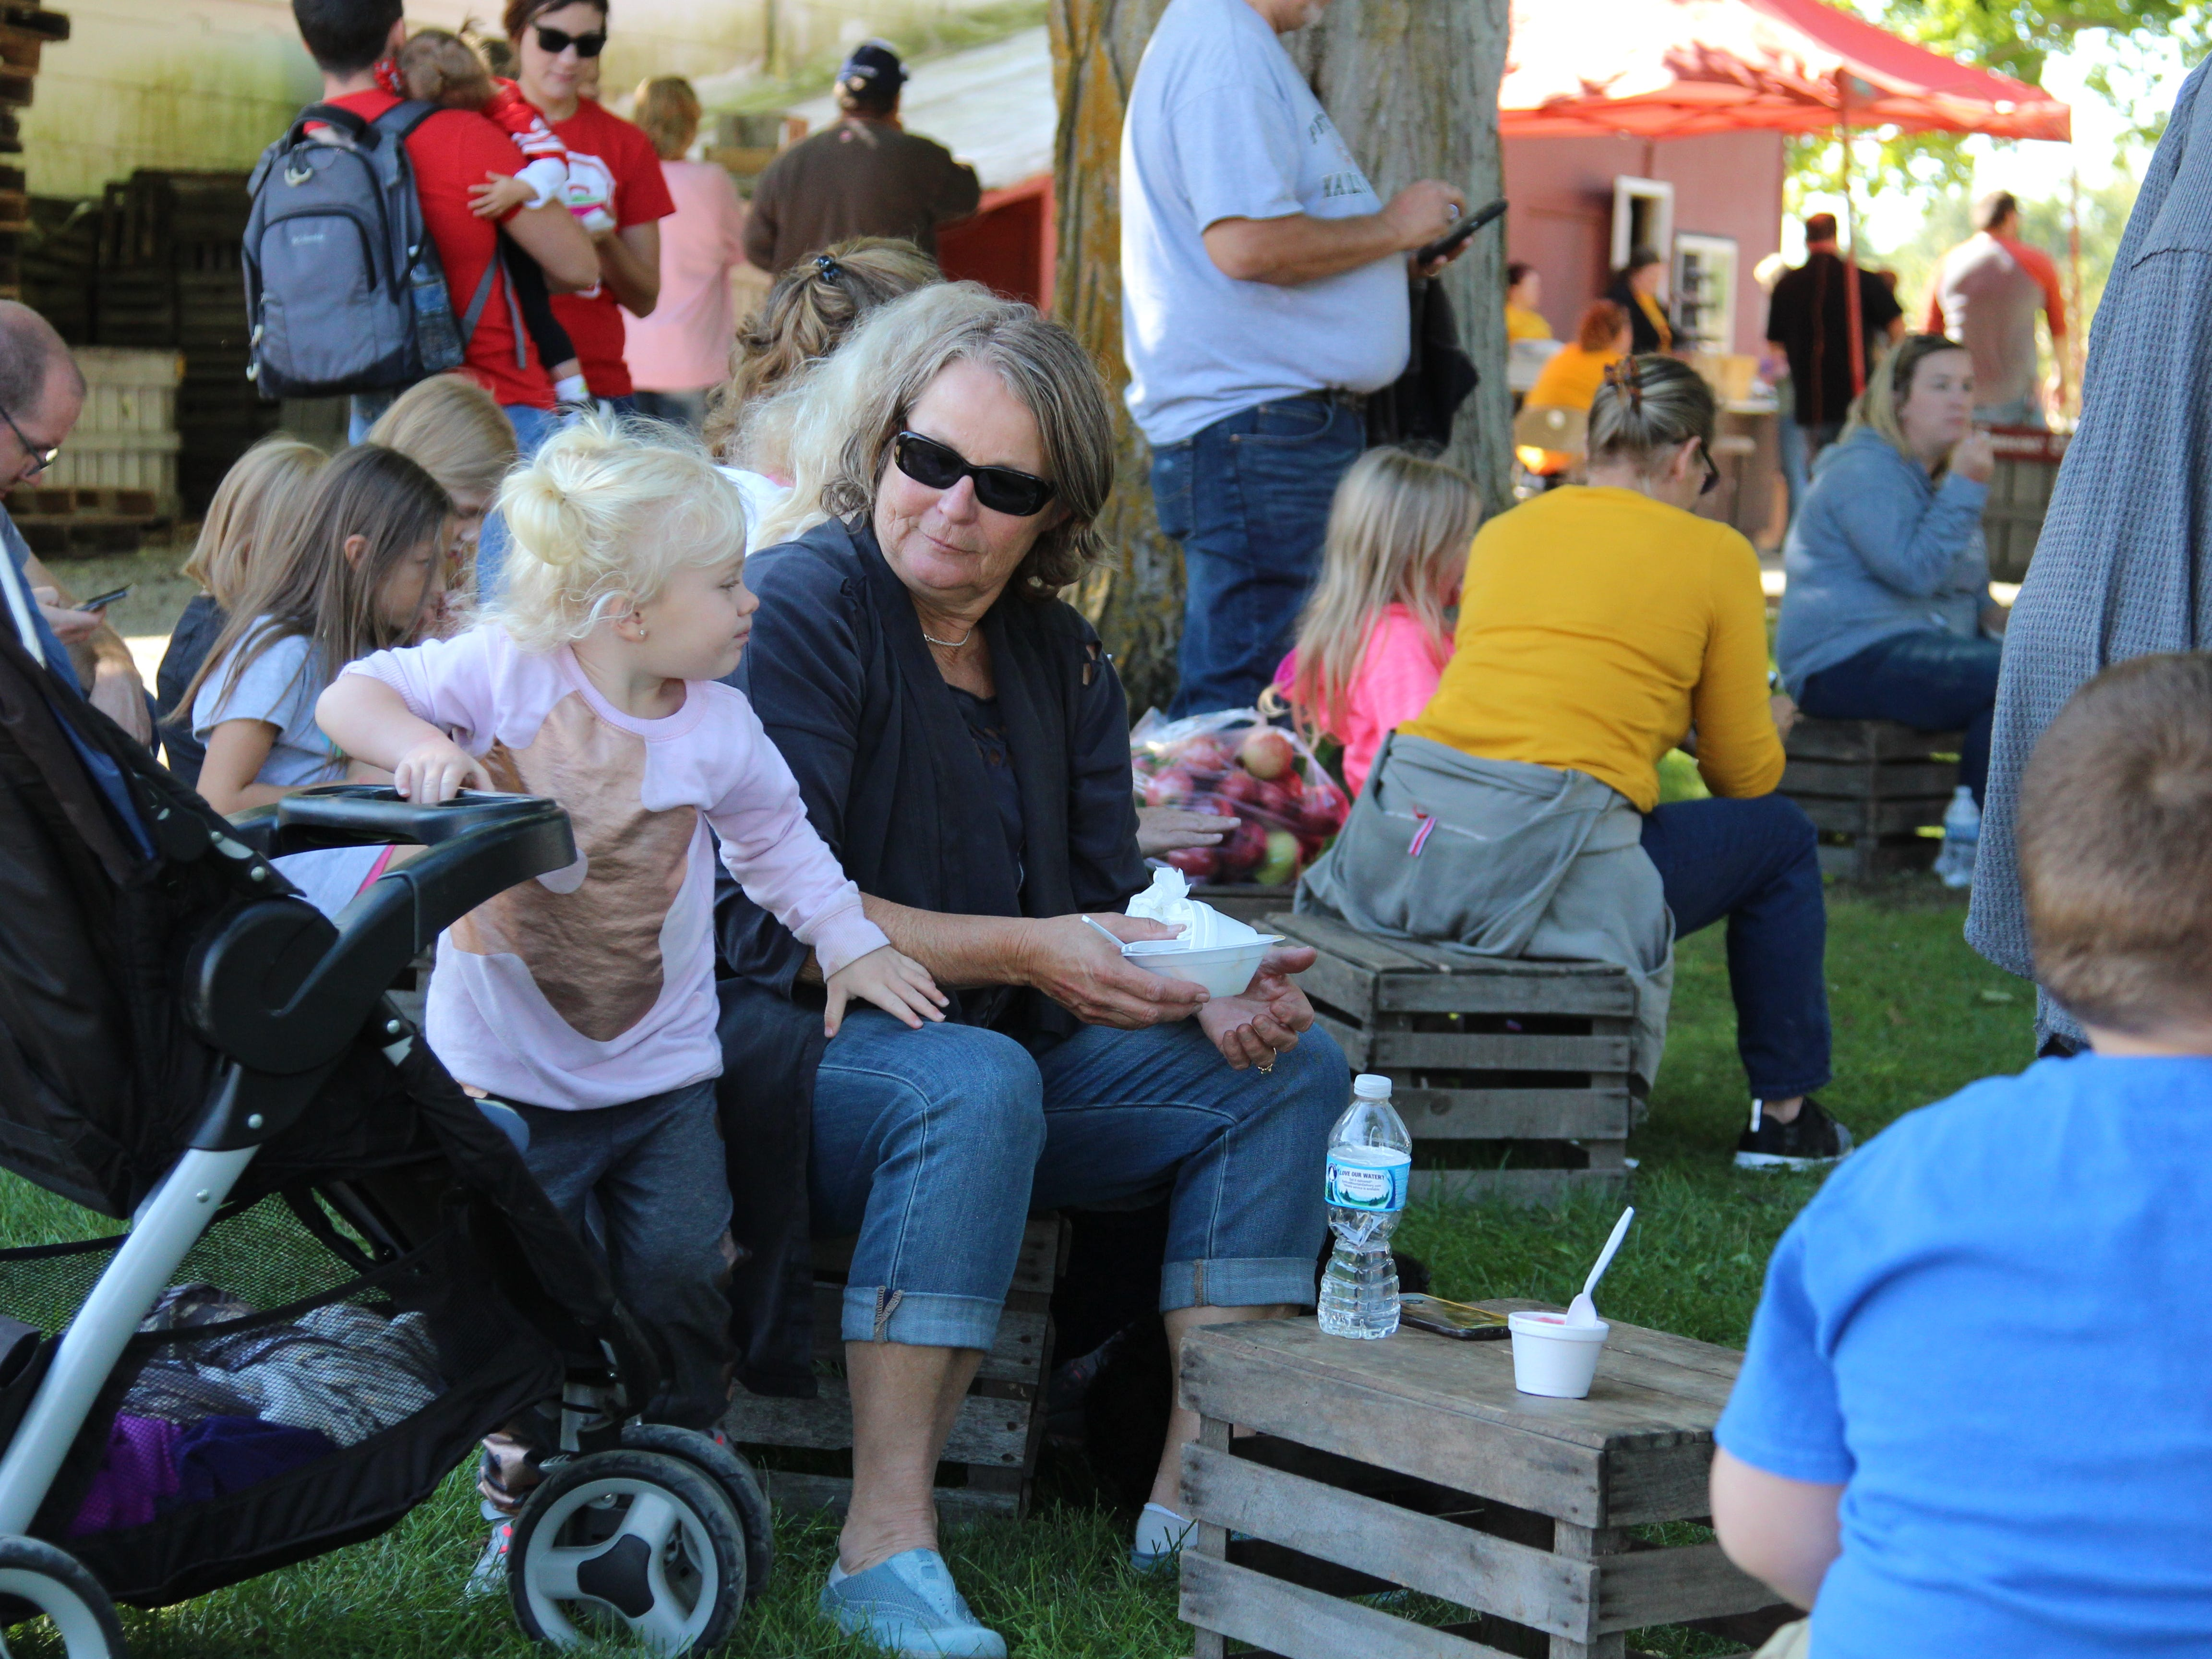 People eat and watch the gospel/bluegrass band Grail play at Applefest, which took place Saturday at Lawrence Orchards.